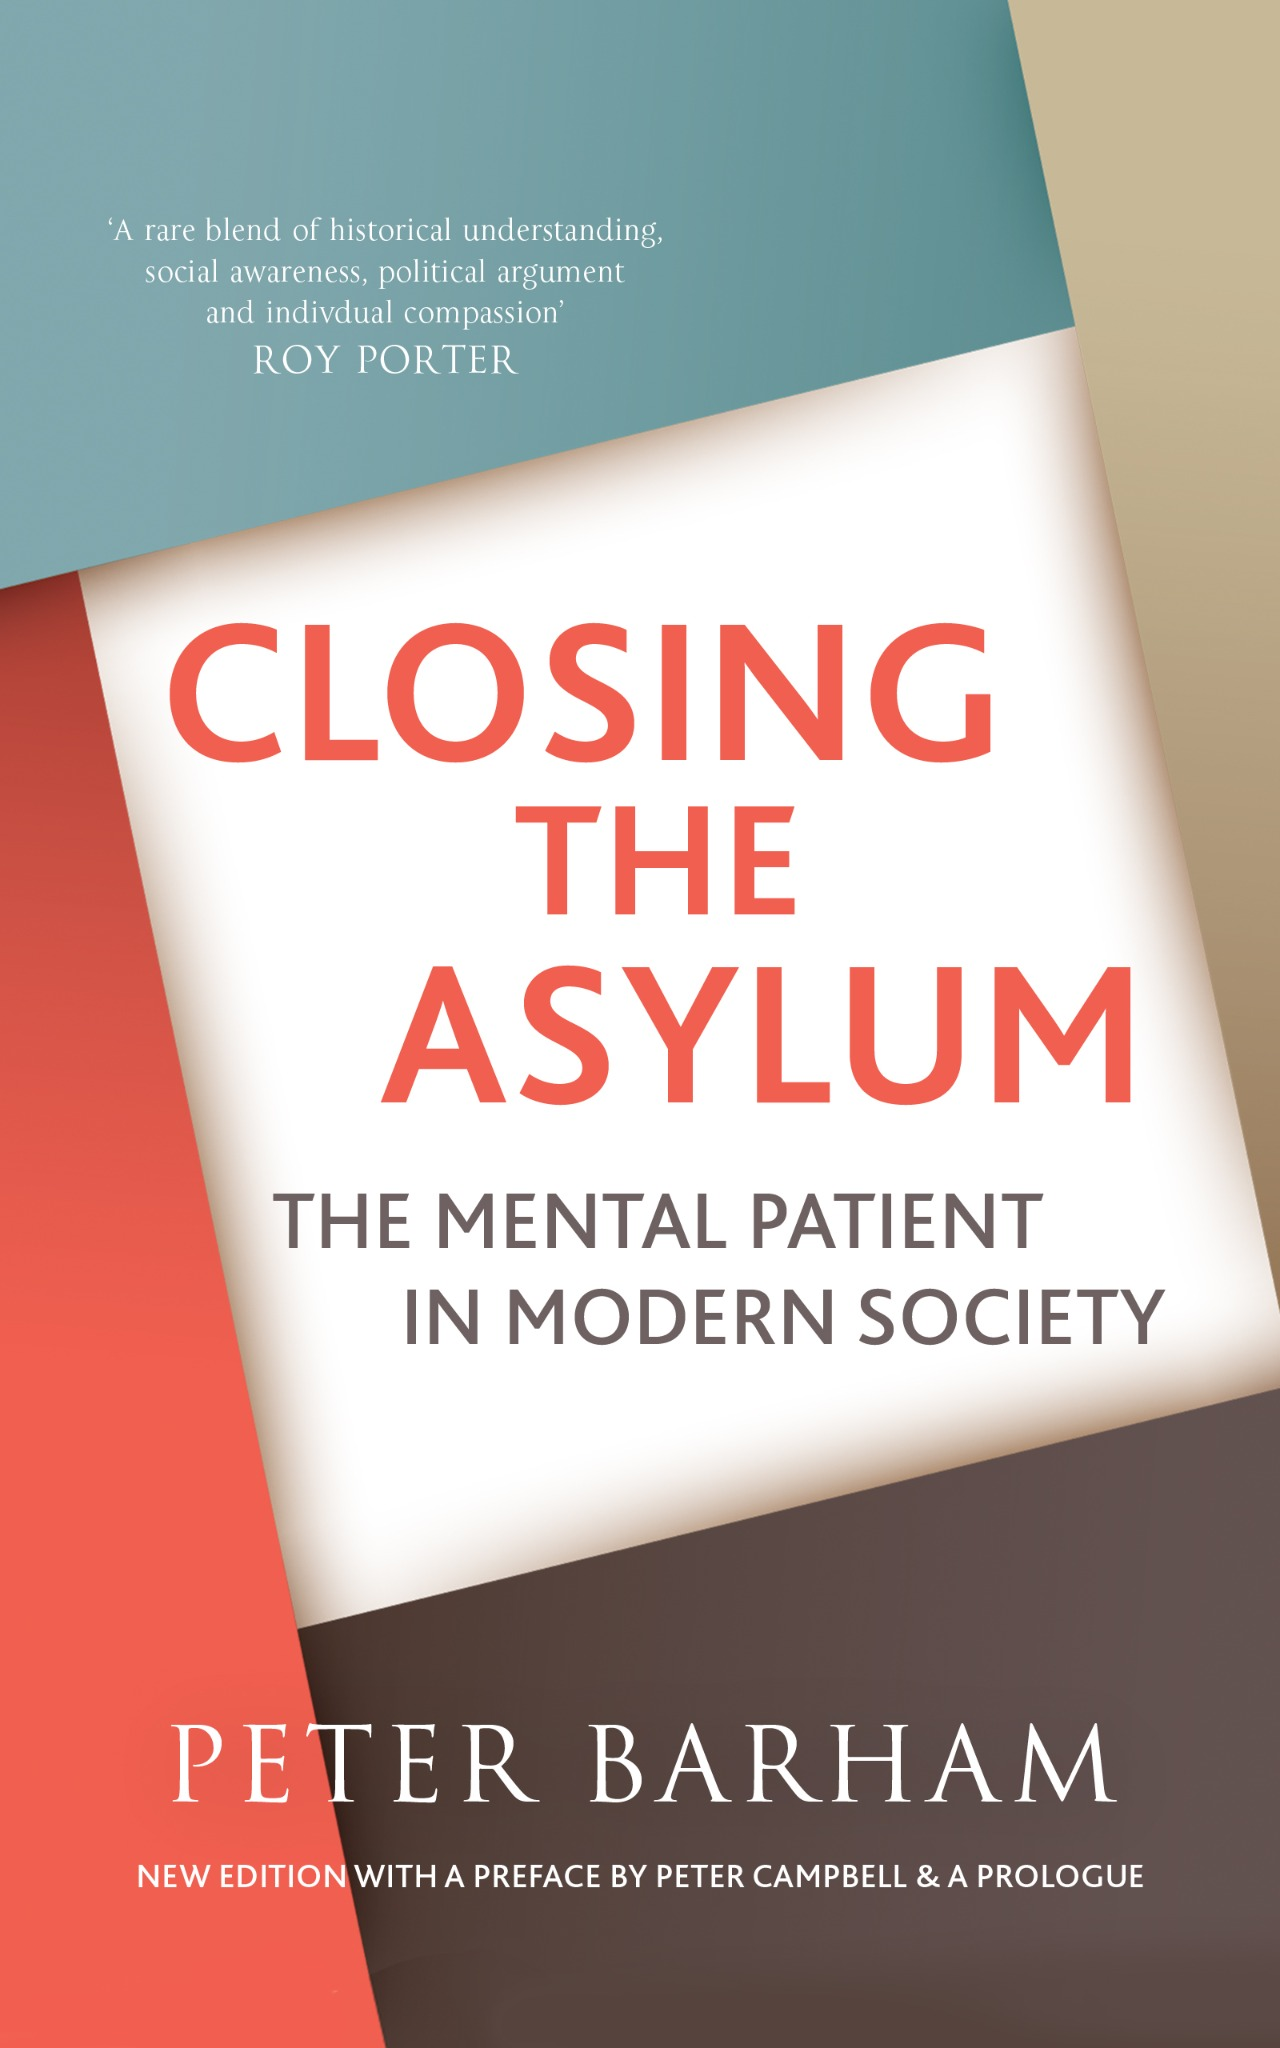 Closing the Asylum: The Mental Patient in Modern Society, an ebook by Peter Barham